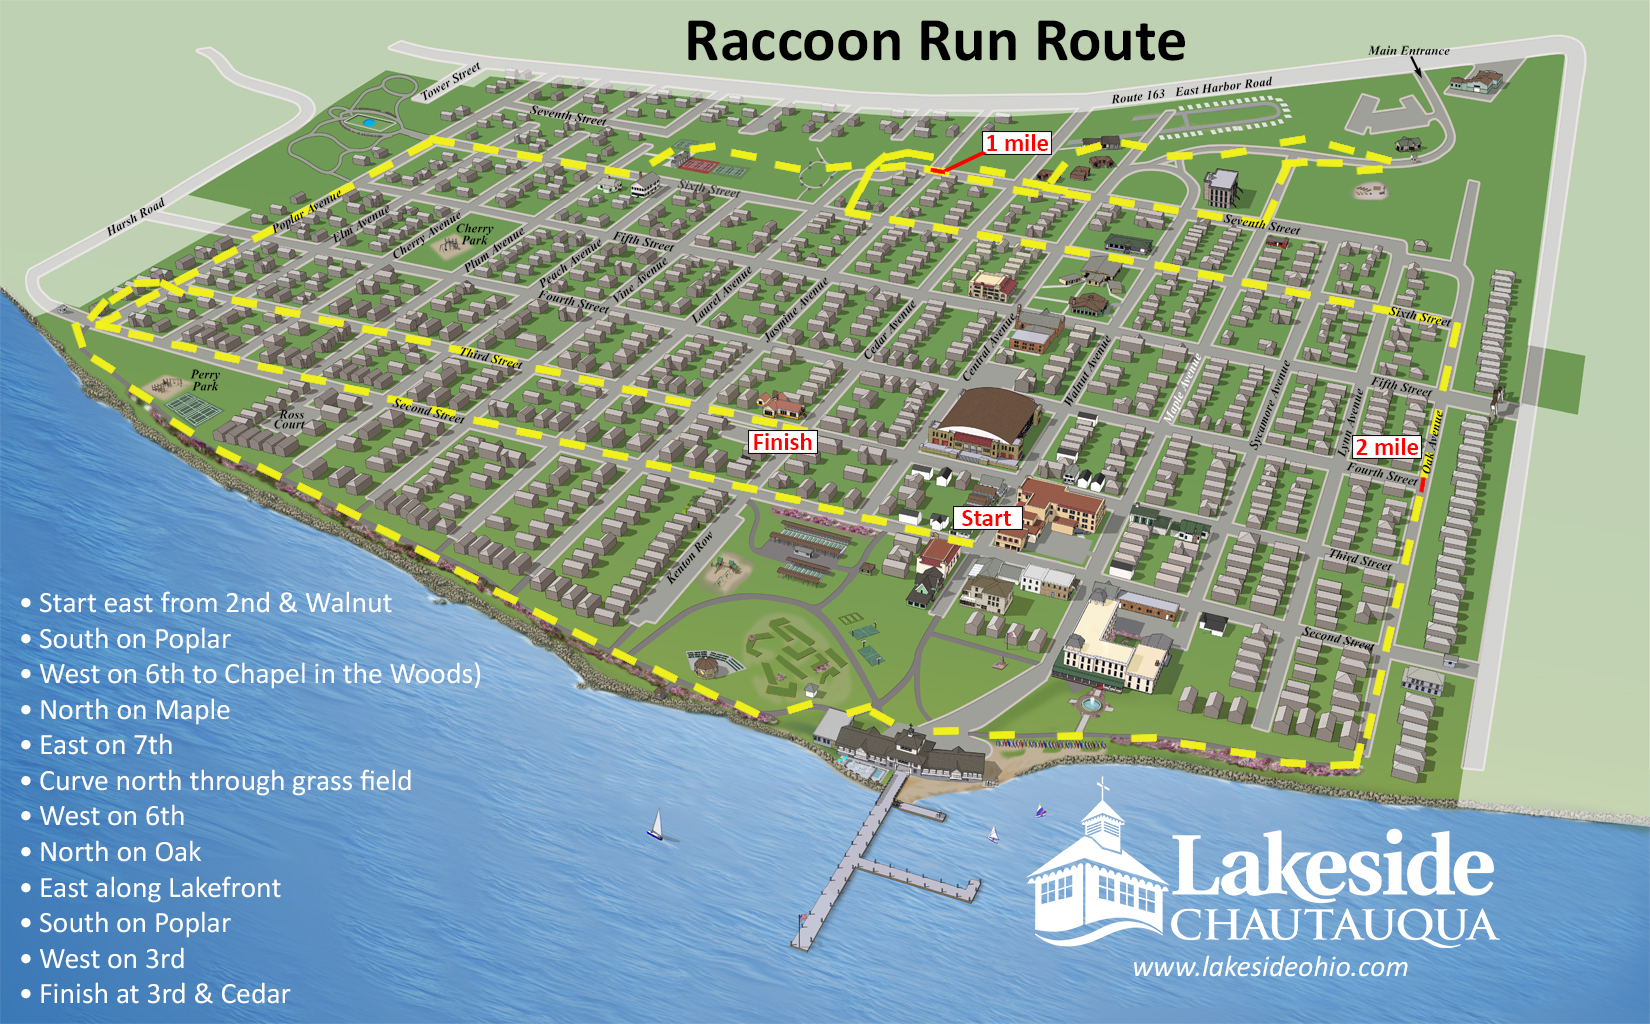 5k raccoon run one mile fun run course map publicscrutiny Image collections